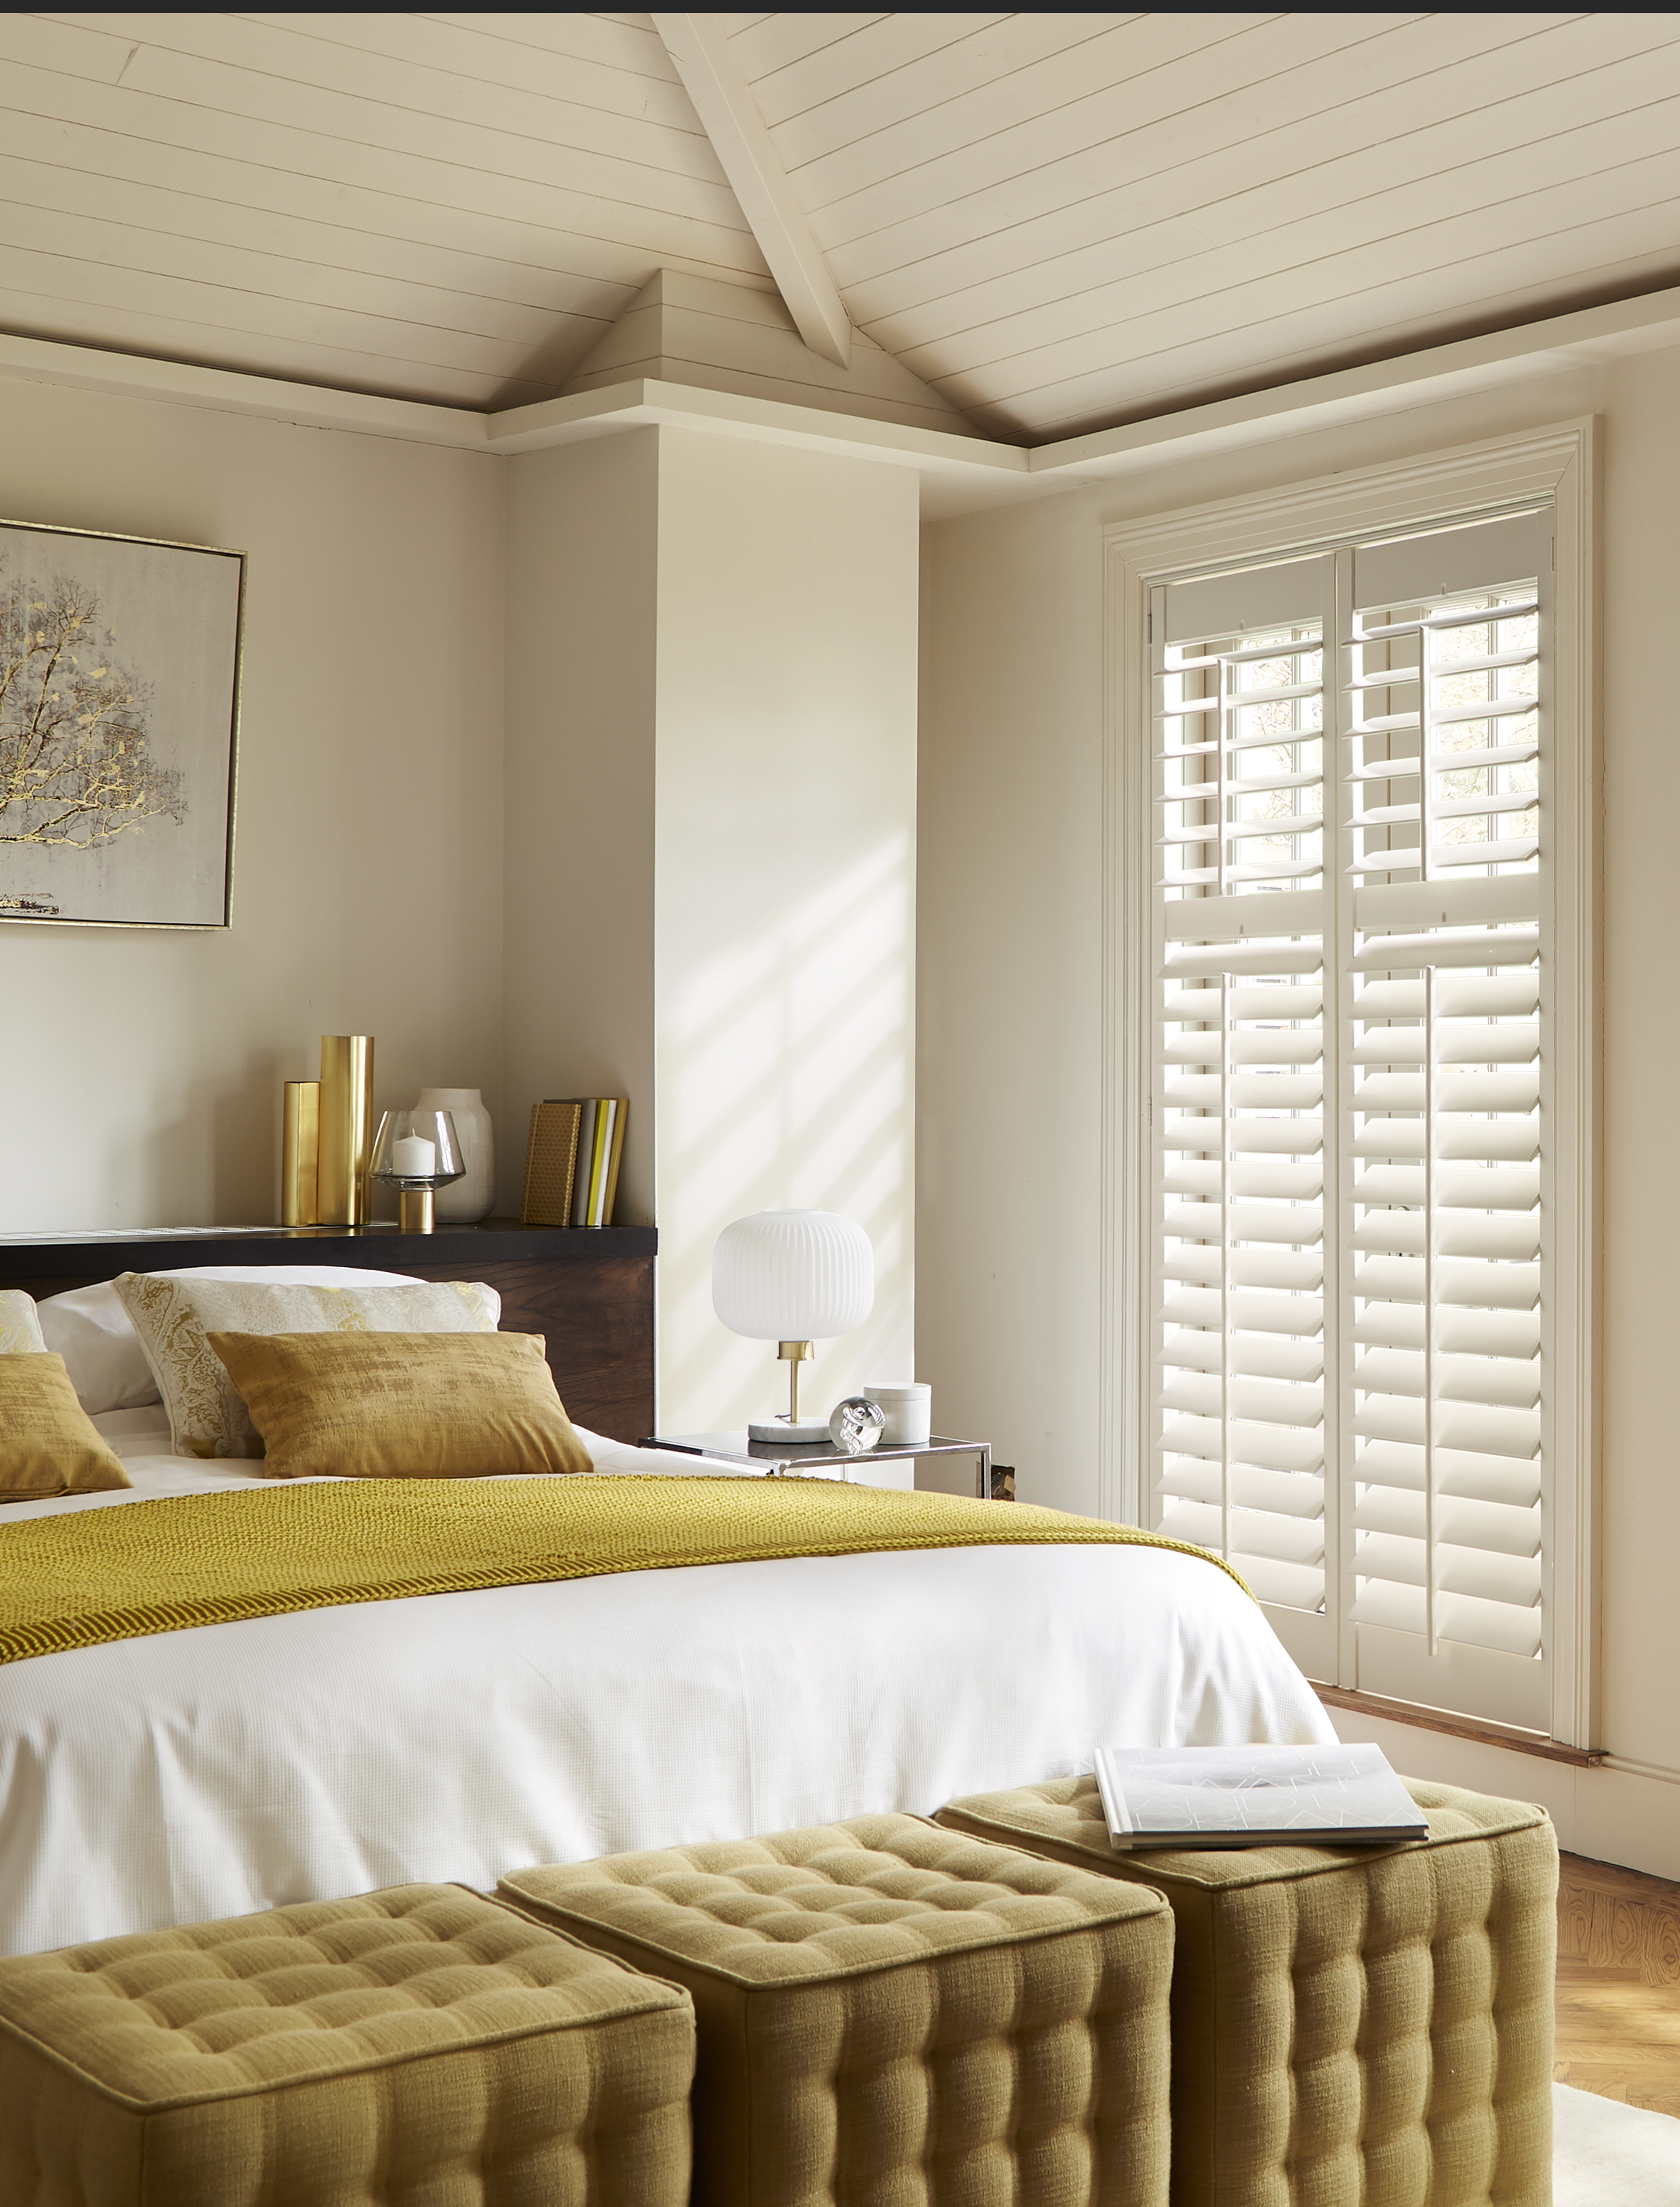 Full Height Shutters      Our most popular style of shutters due to their flexibility almost as much as their look. Covering the full height of the window, panels can be divided into fully controllable sections.